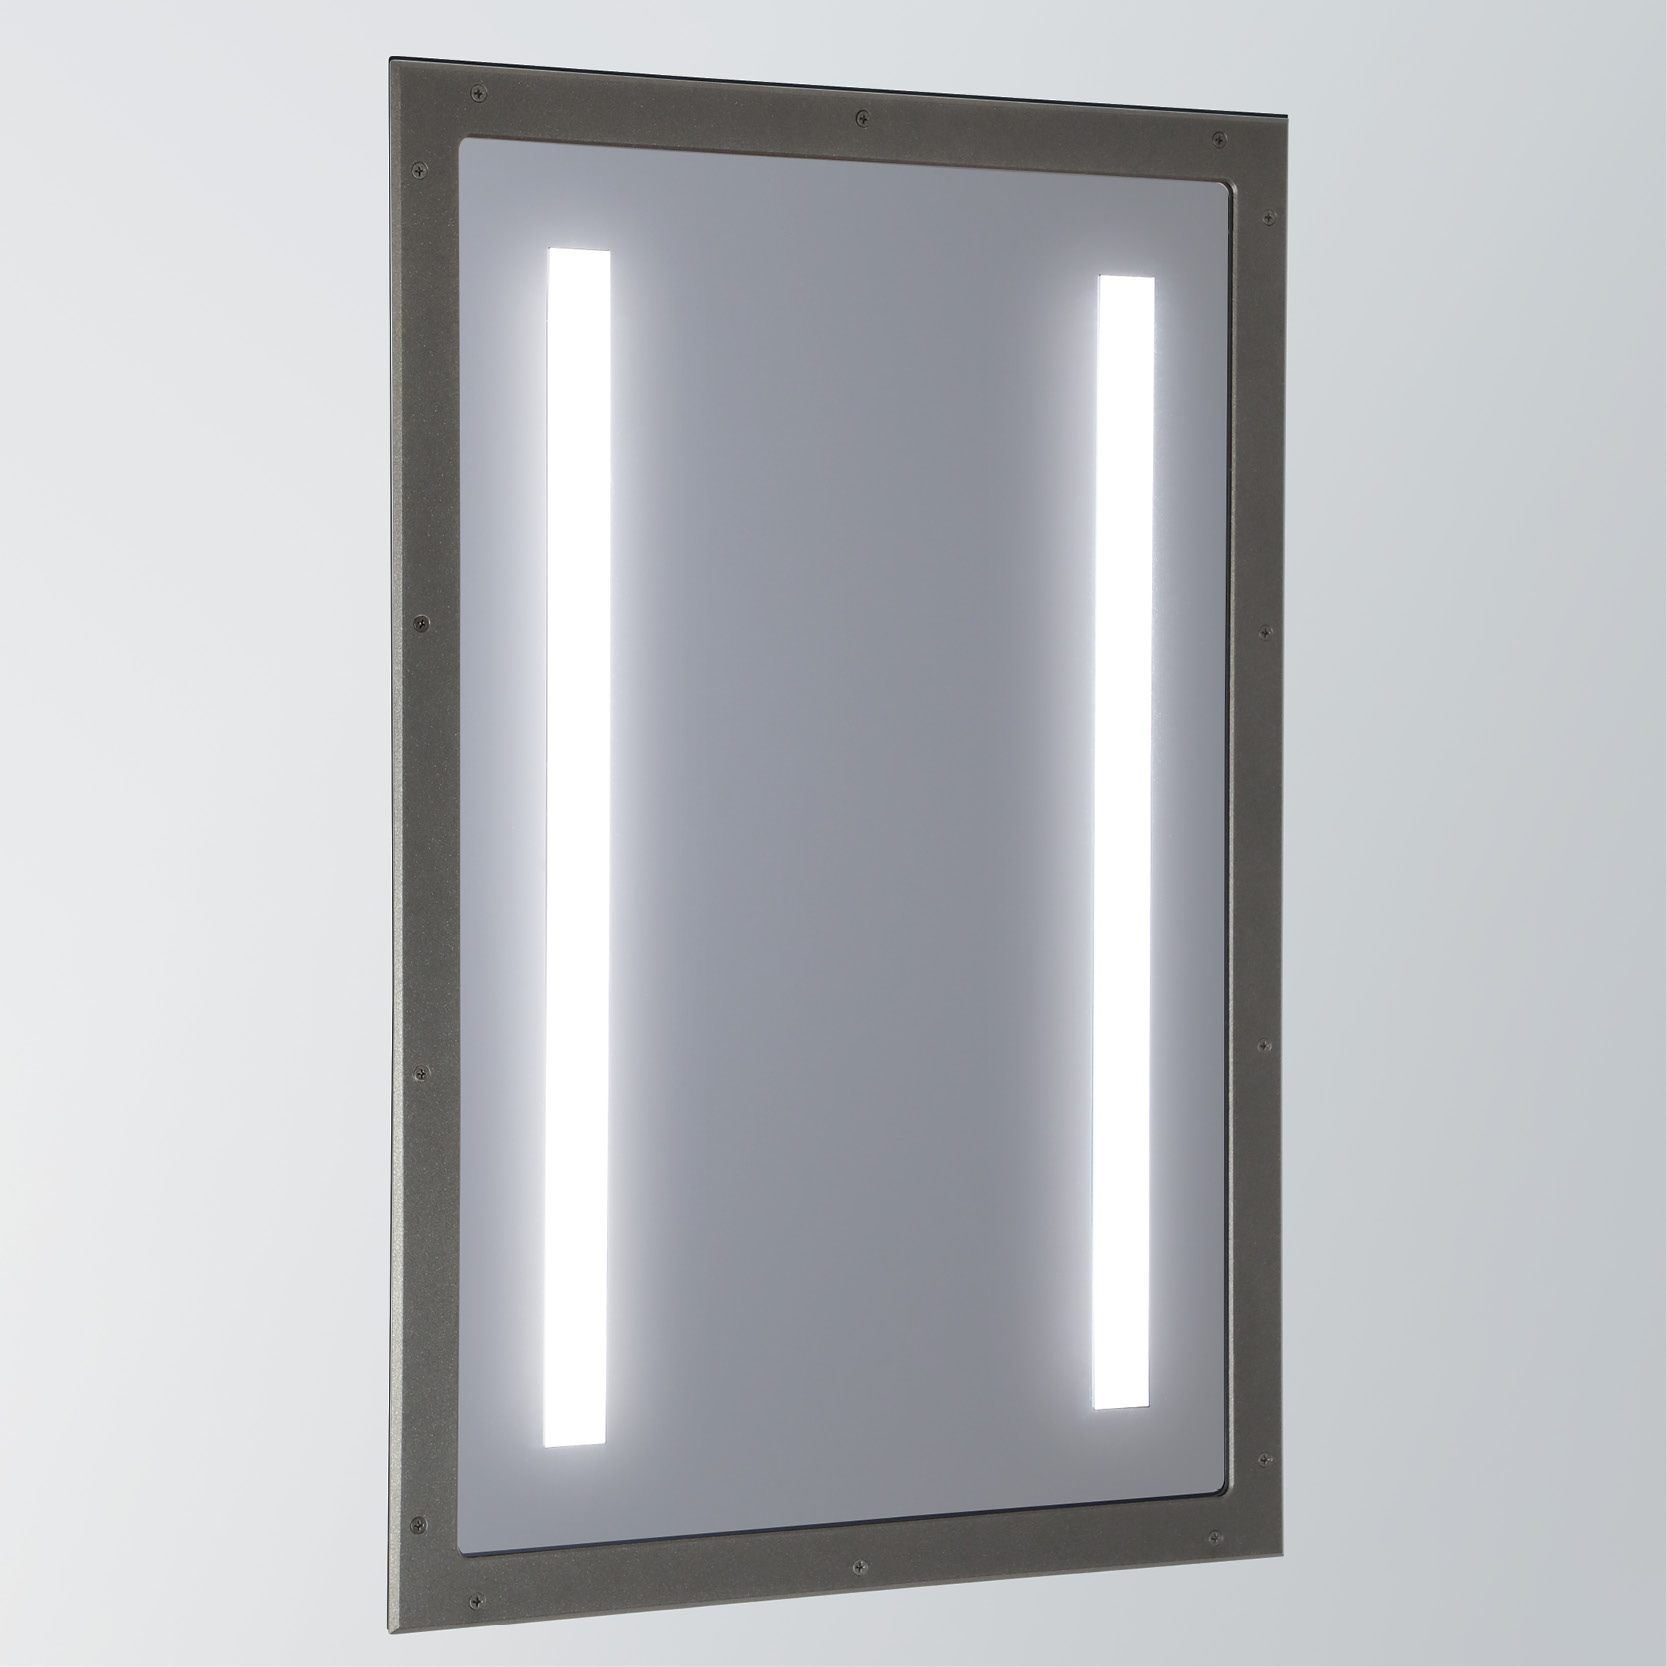 Sole, an illuminated high abuse mirror for behavioral health spaces